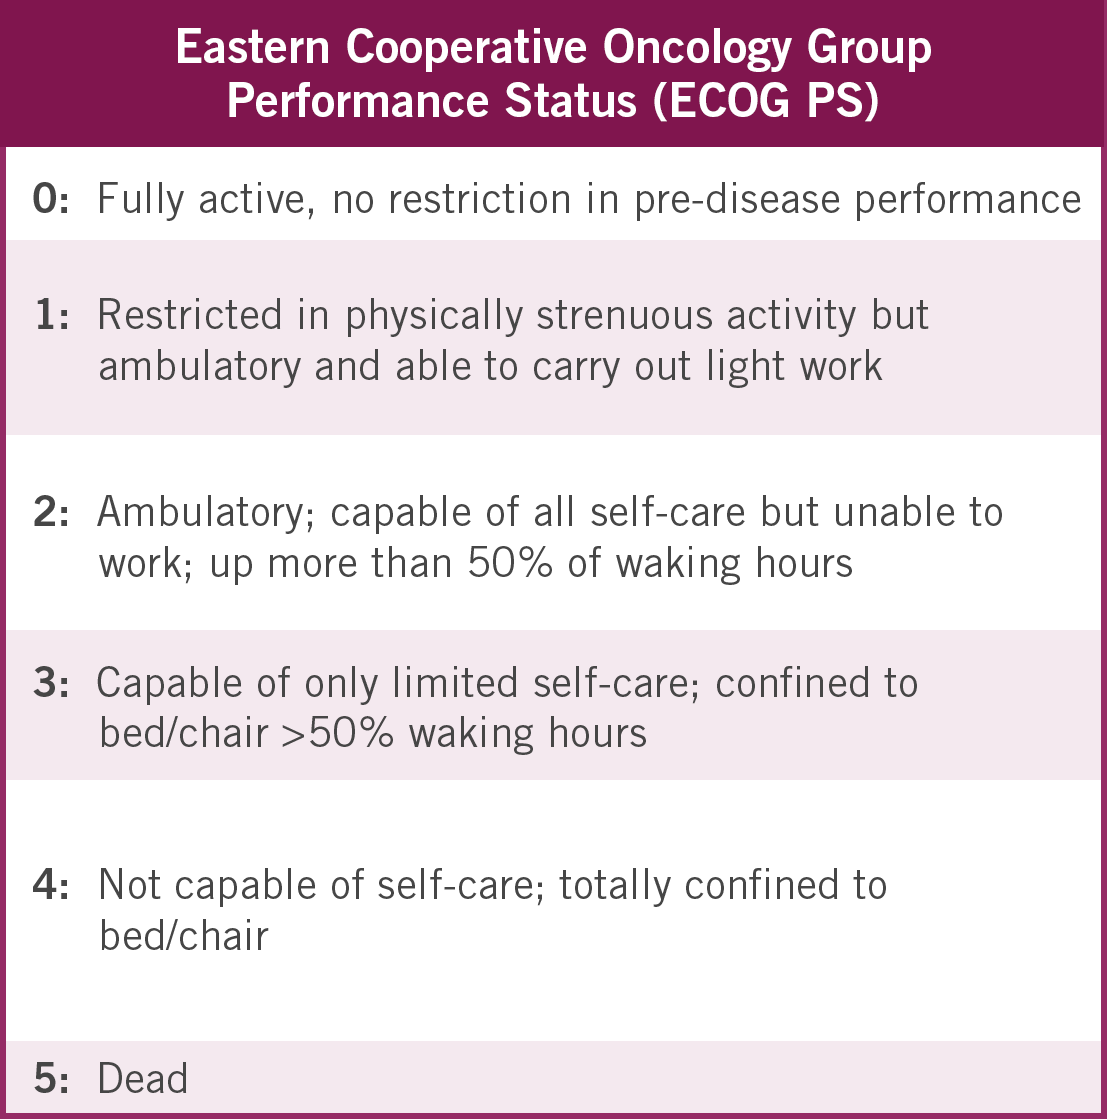 Eastern Cooperative Oncology Group Performance Status (ECOG PS)